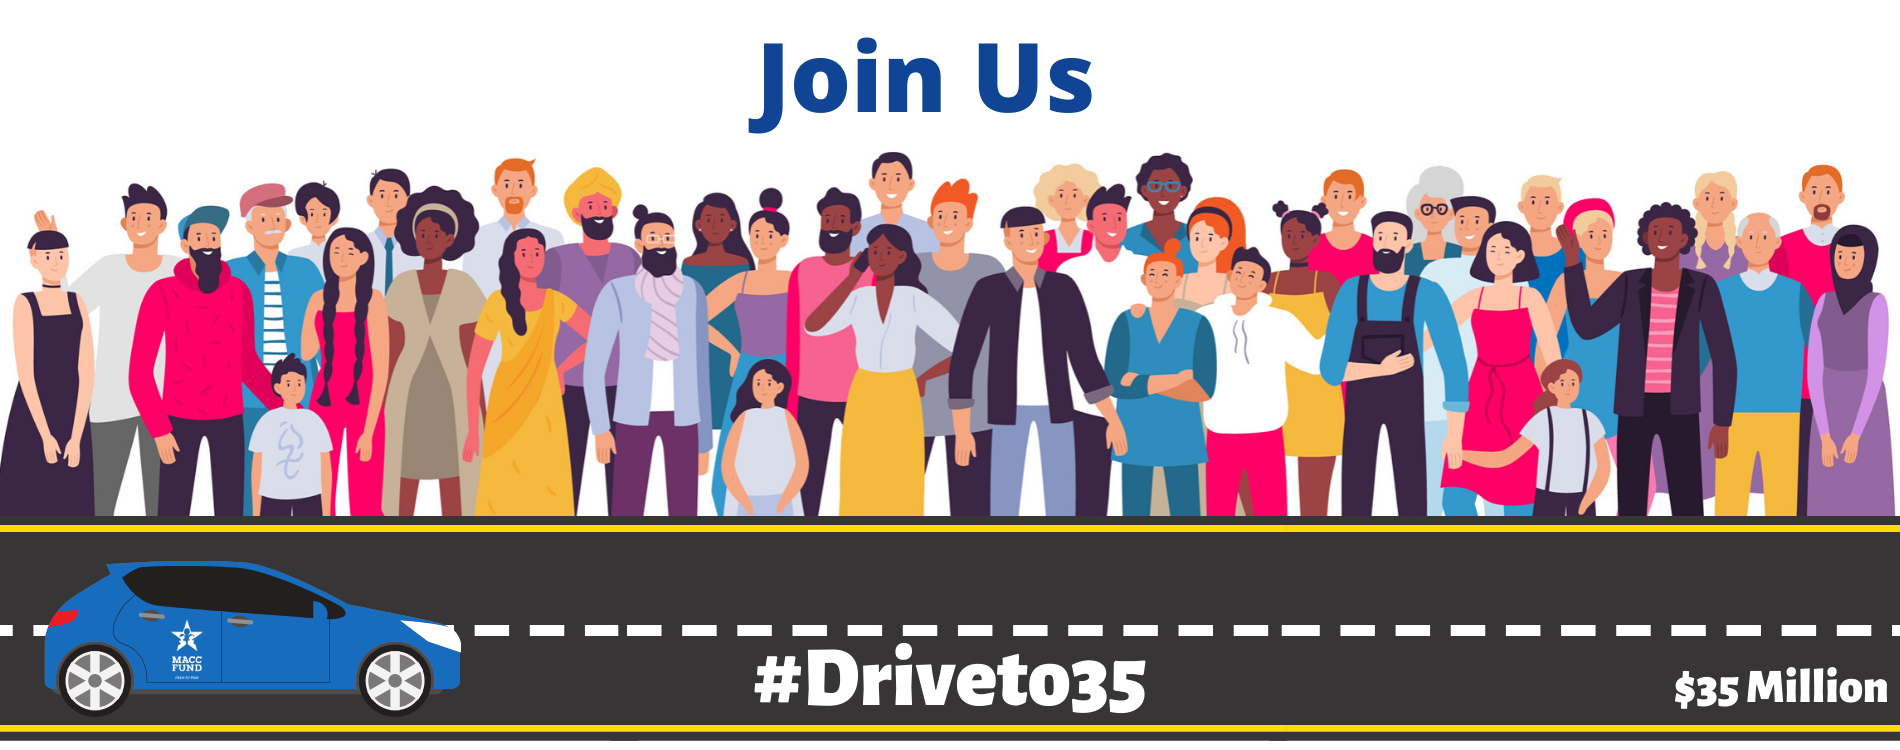 Announcing Our #Driveto35 Initiative